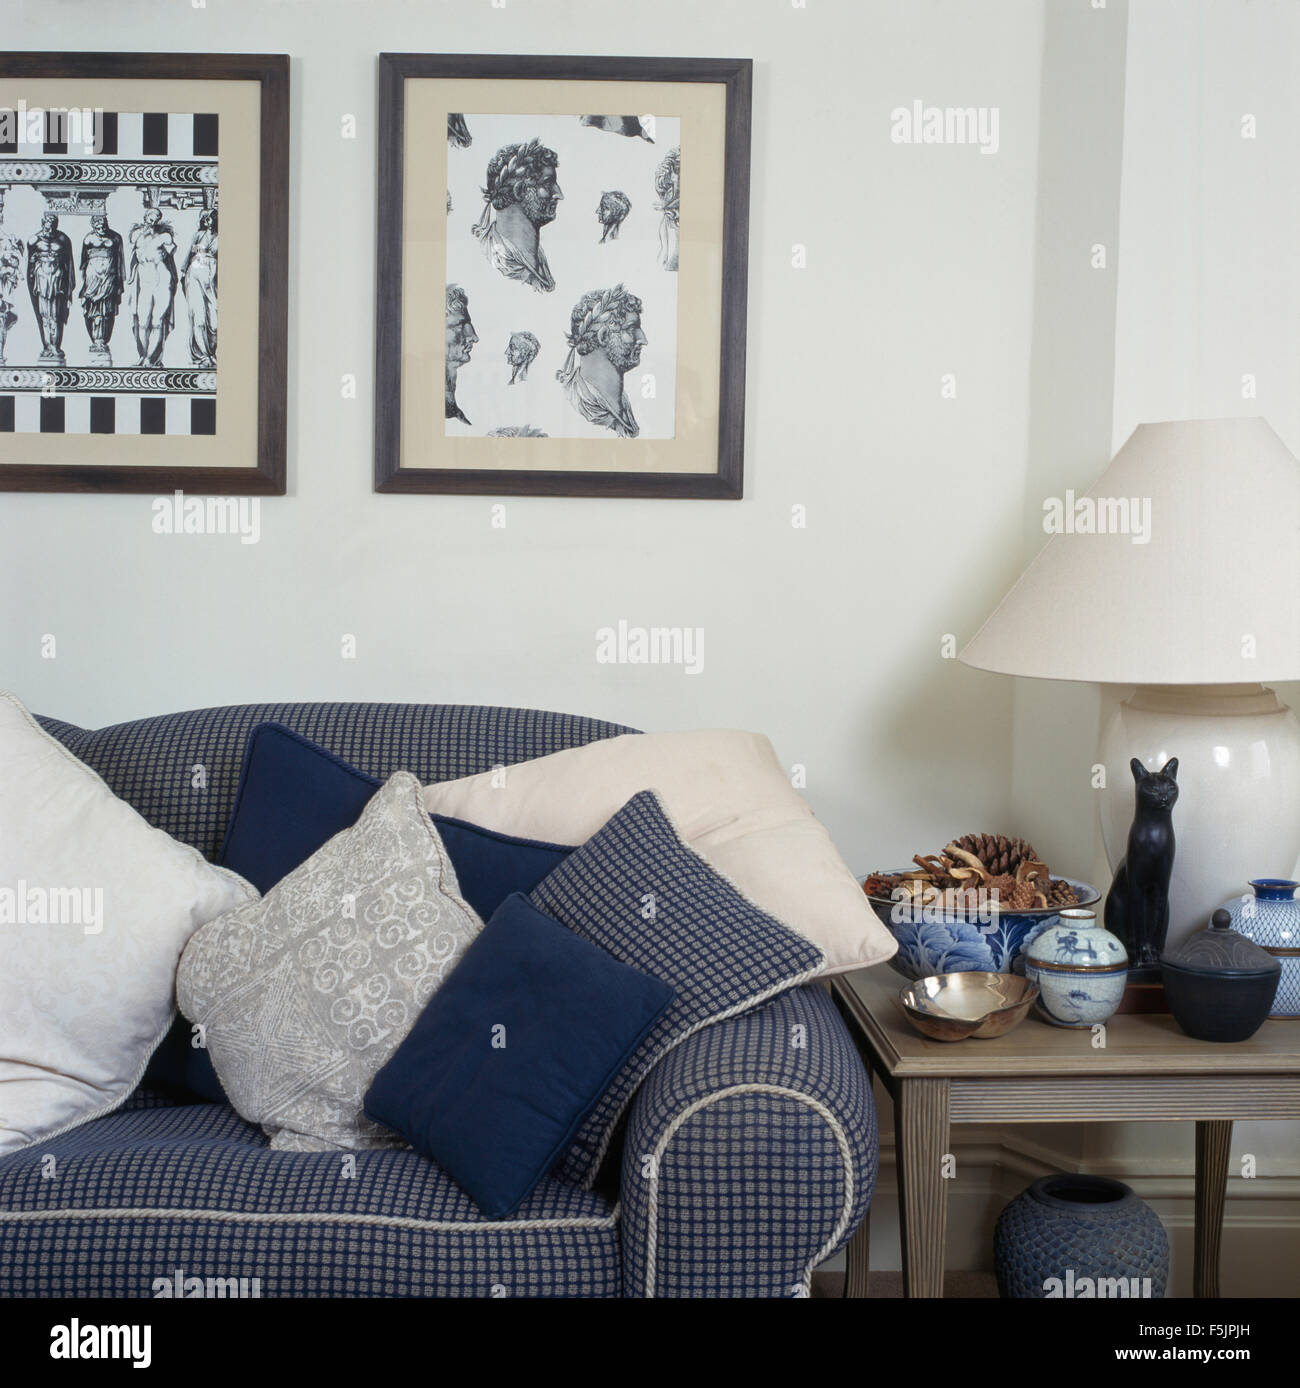 Black+white neo-classical framed prints above a blue checked sofa ...